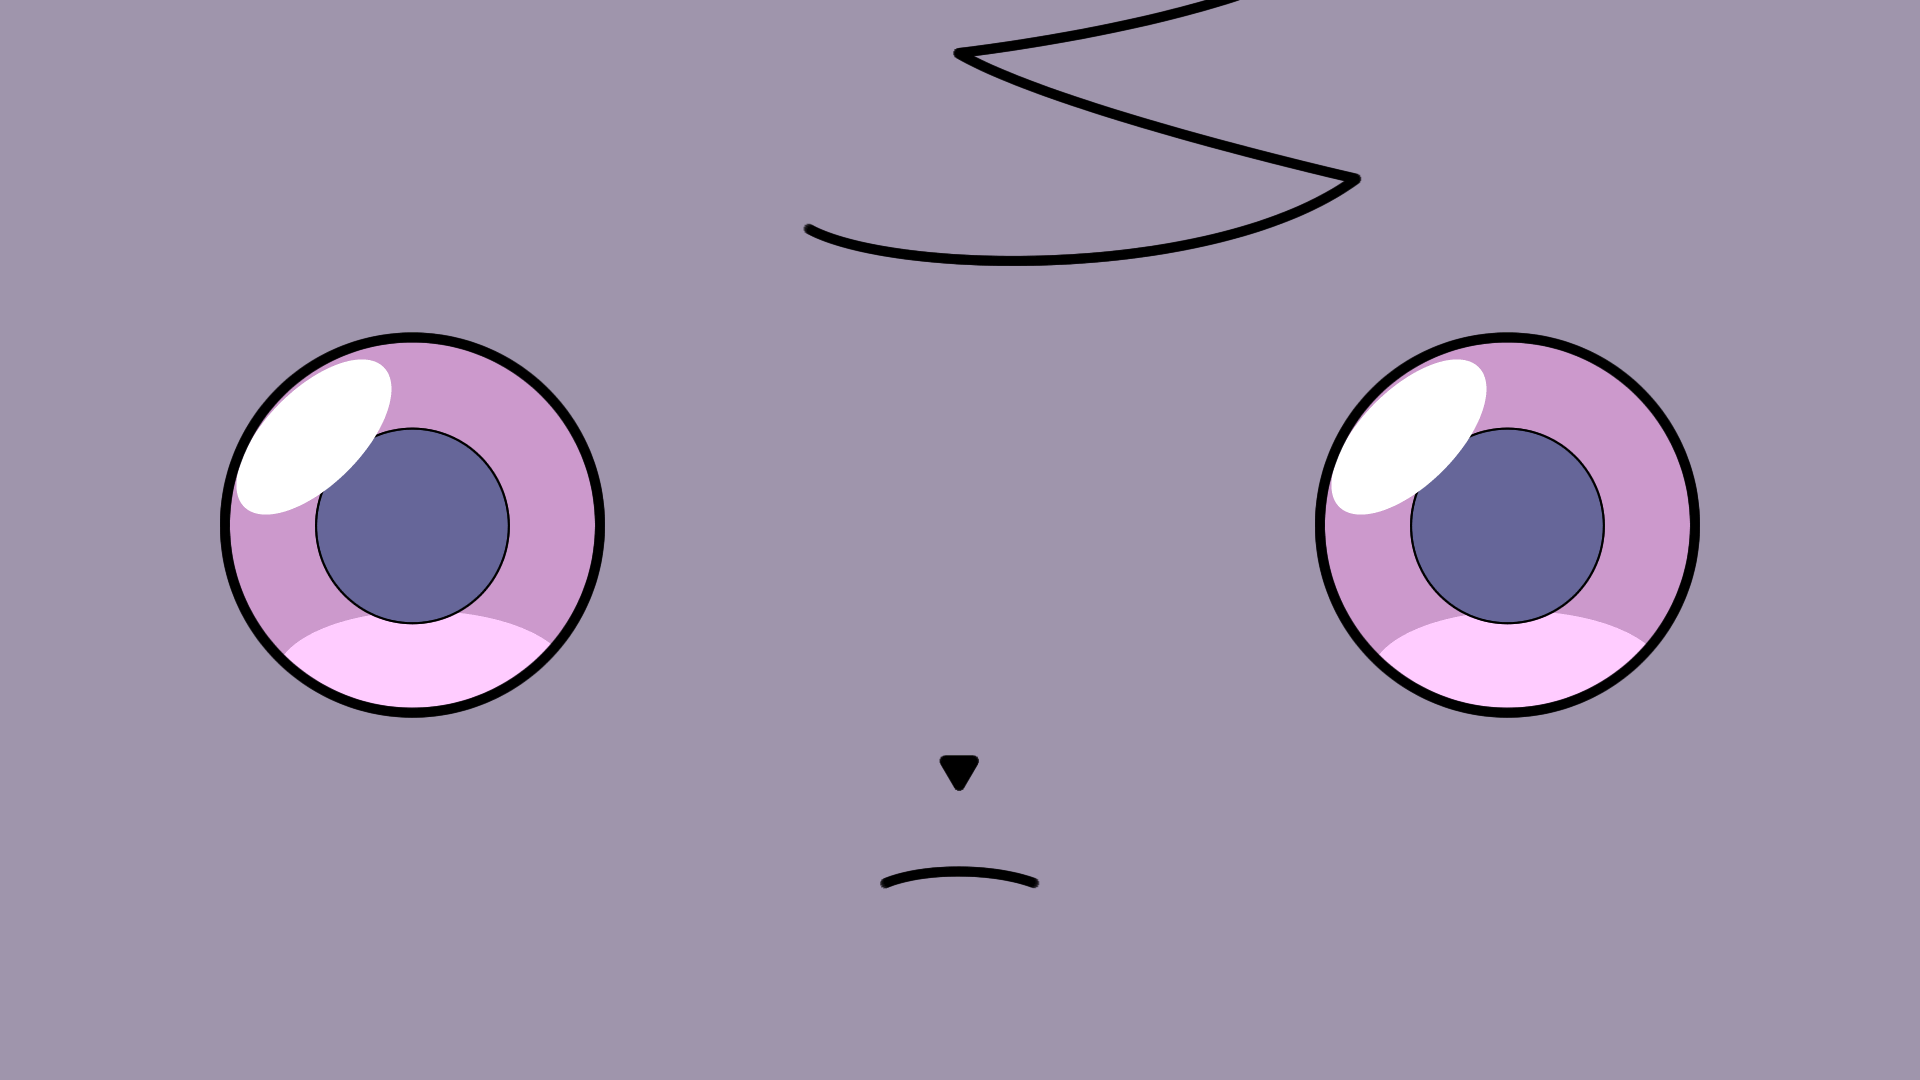 put the Espurr wallpaper on my dual monitor setup pokemon 1920x1080